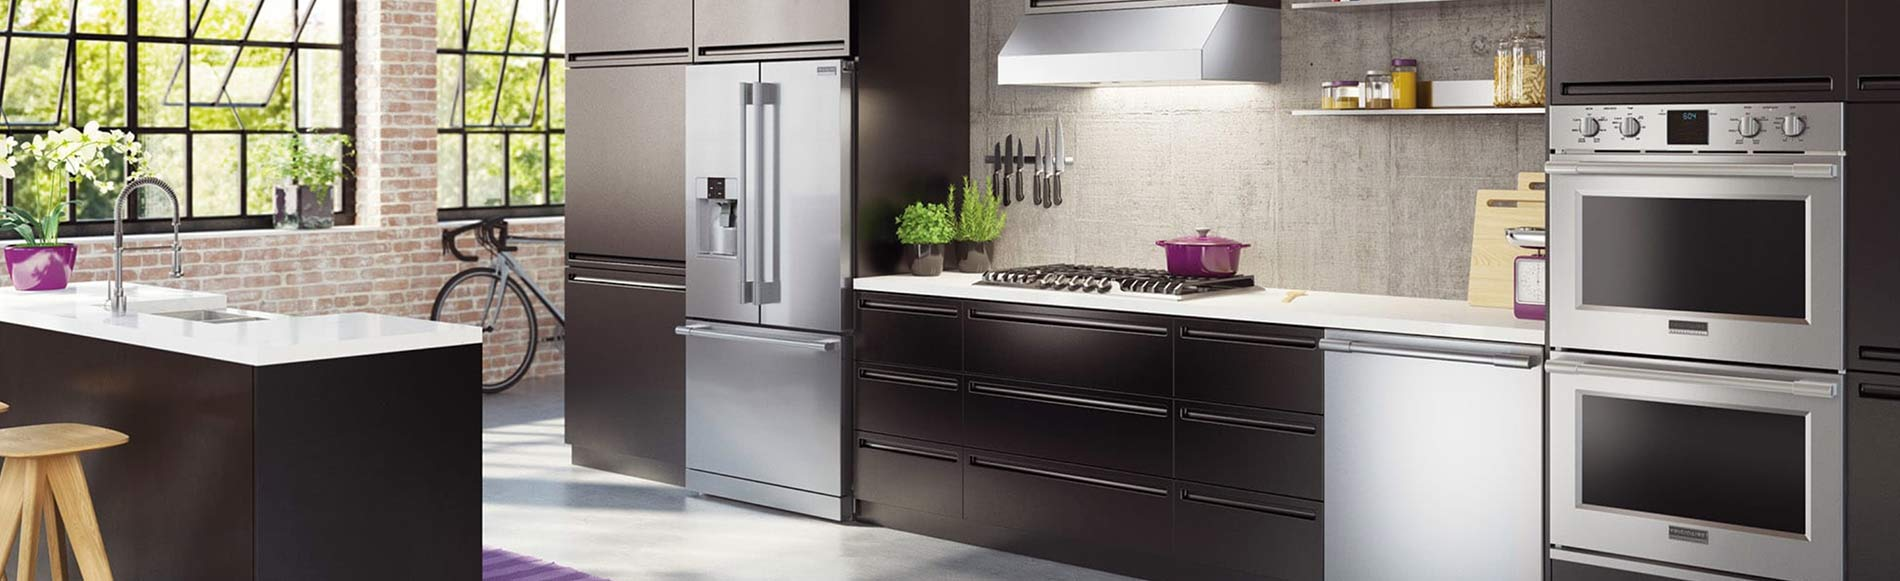 Frigidaire Products Online